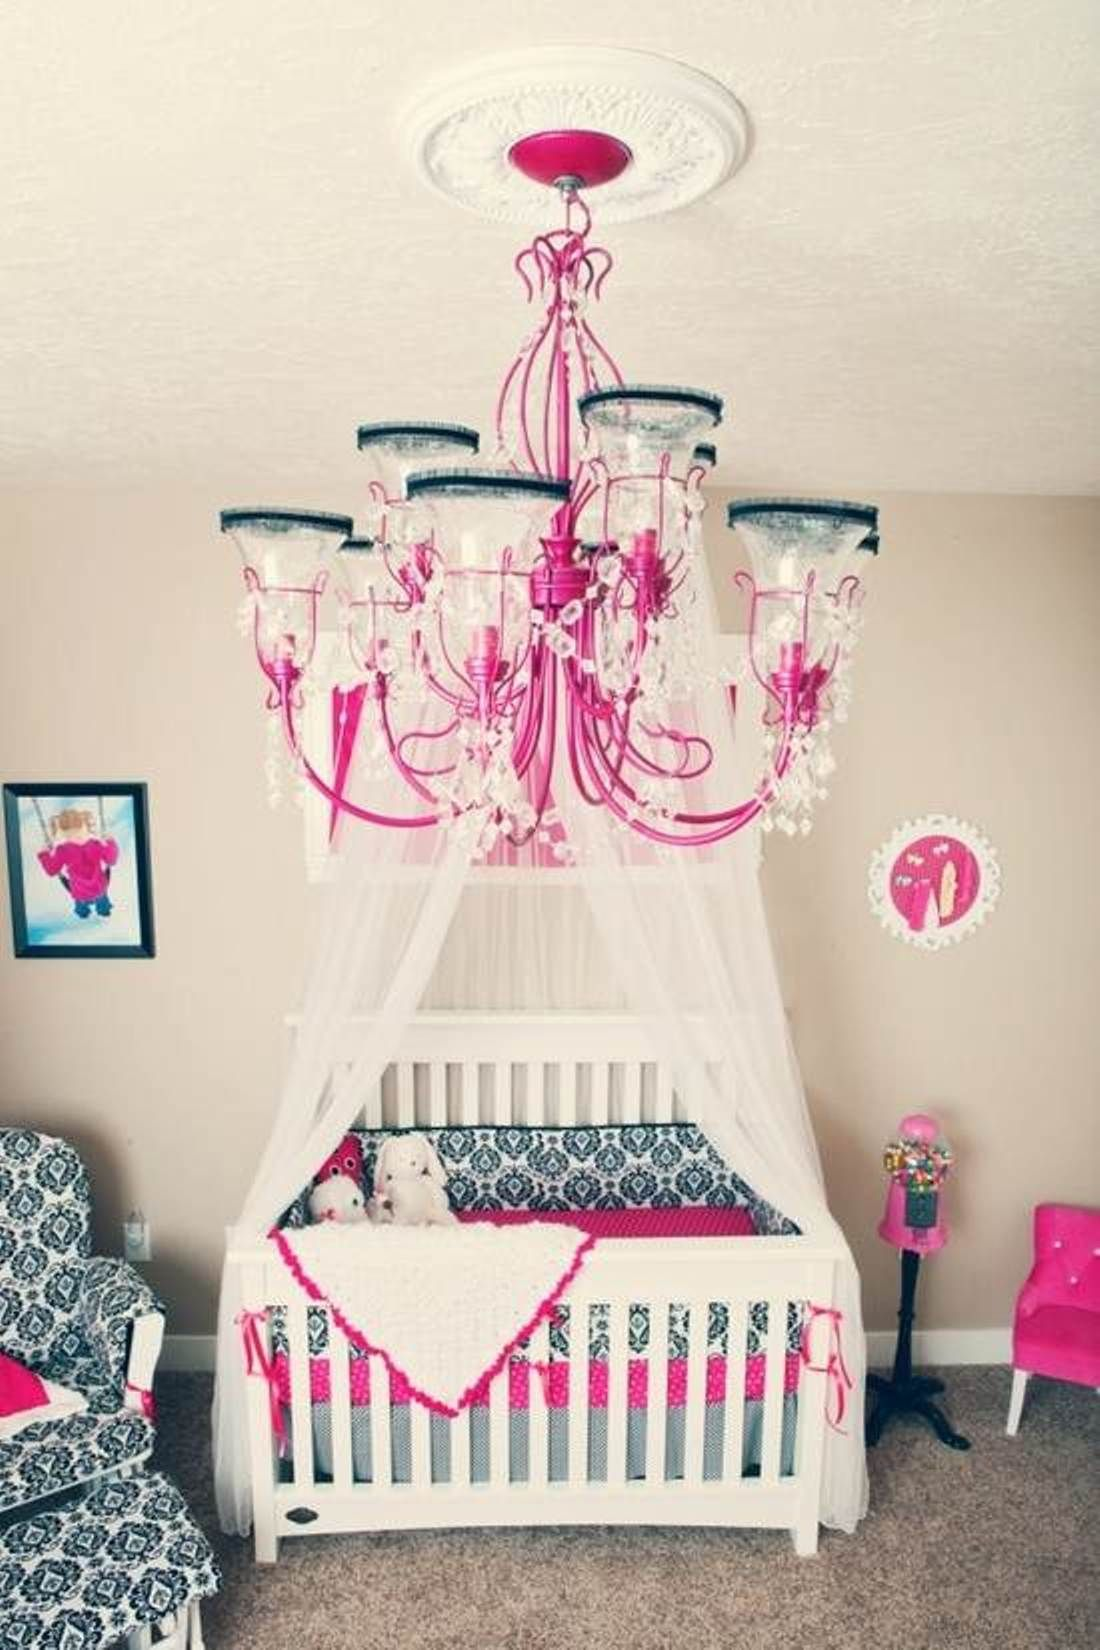 Cute baby girl bedroom ideas better home and garden dos cute baby girl bedroom ideas better home and garden arubaitofo Images